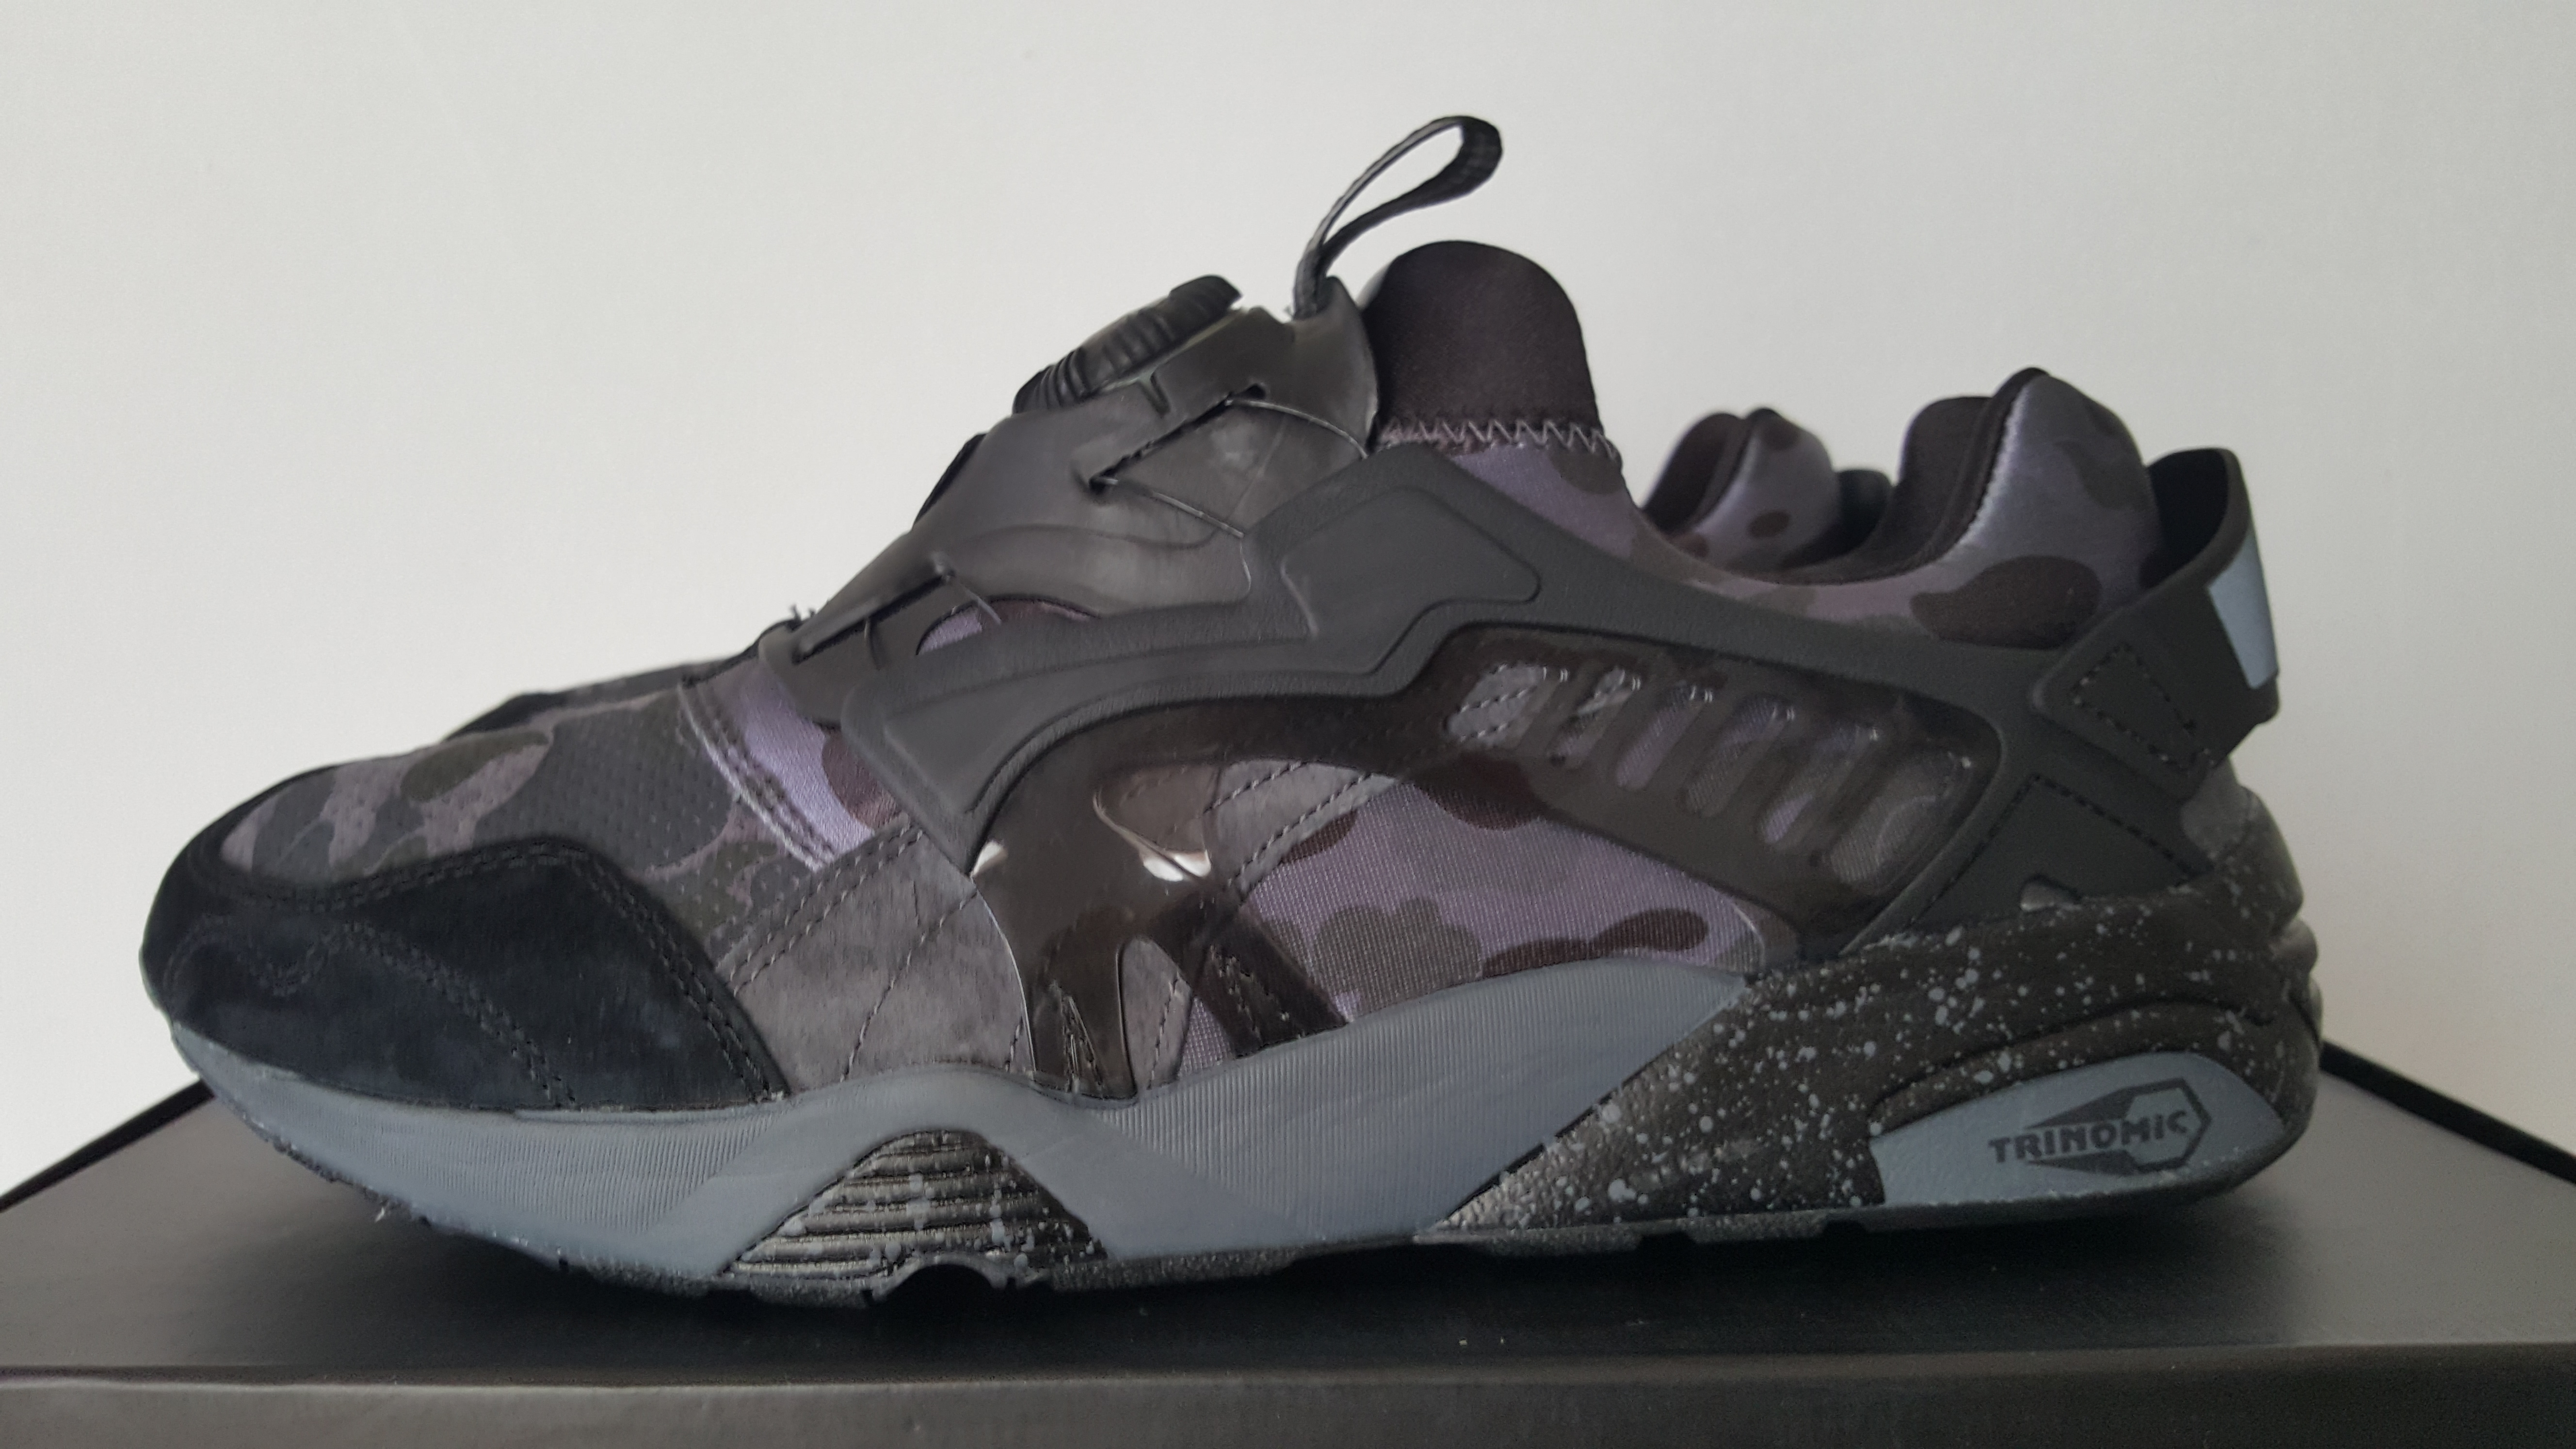 Bape Puma x Bape Disc Blaze Grey Camo Size 11.5 - Low-Top Sneakers ... acb75c2d1